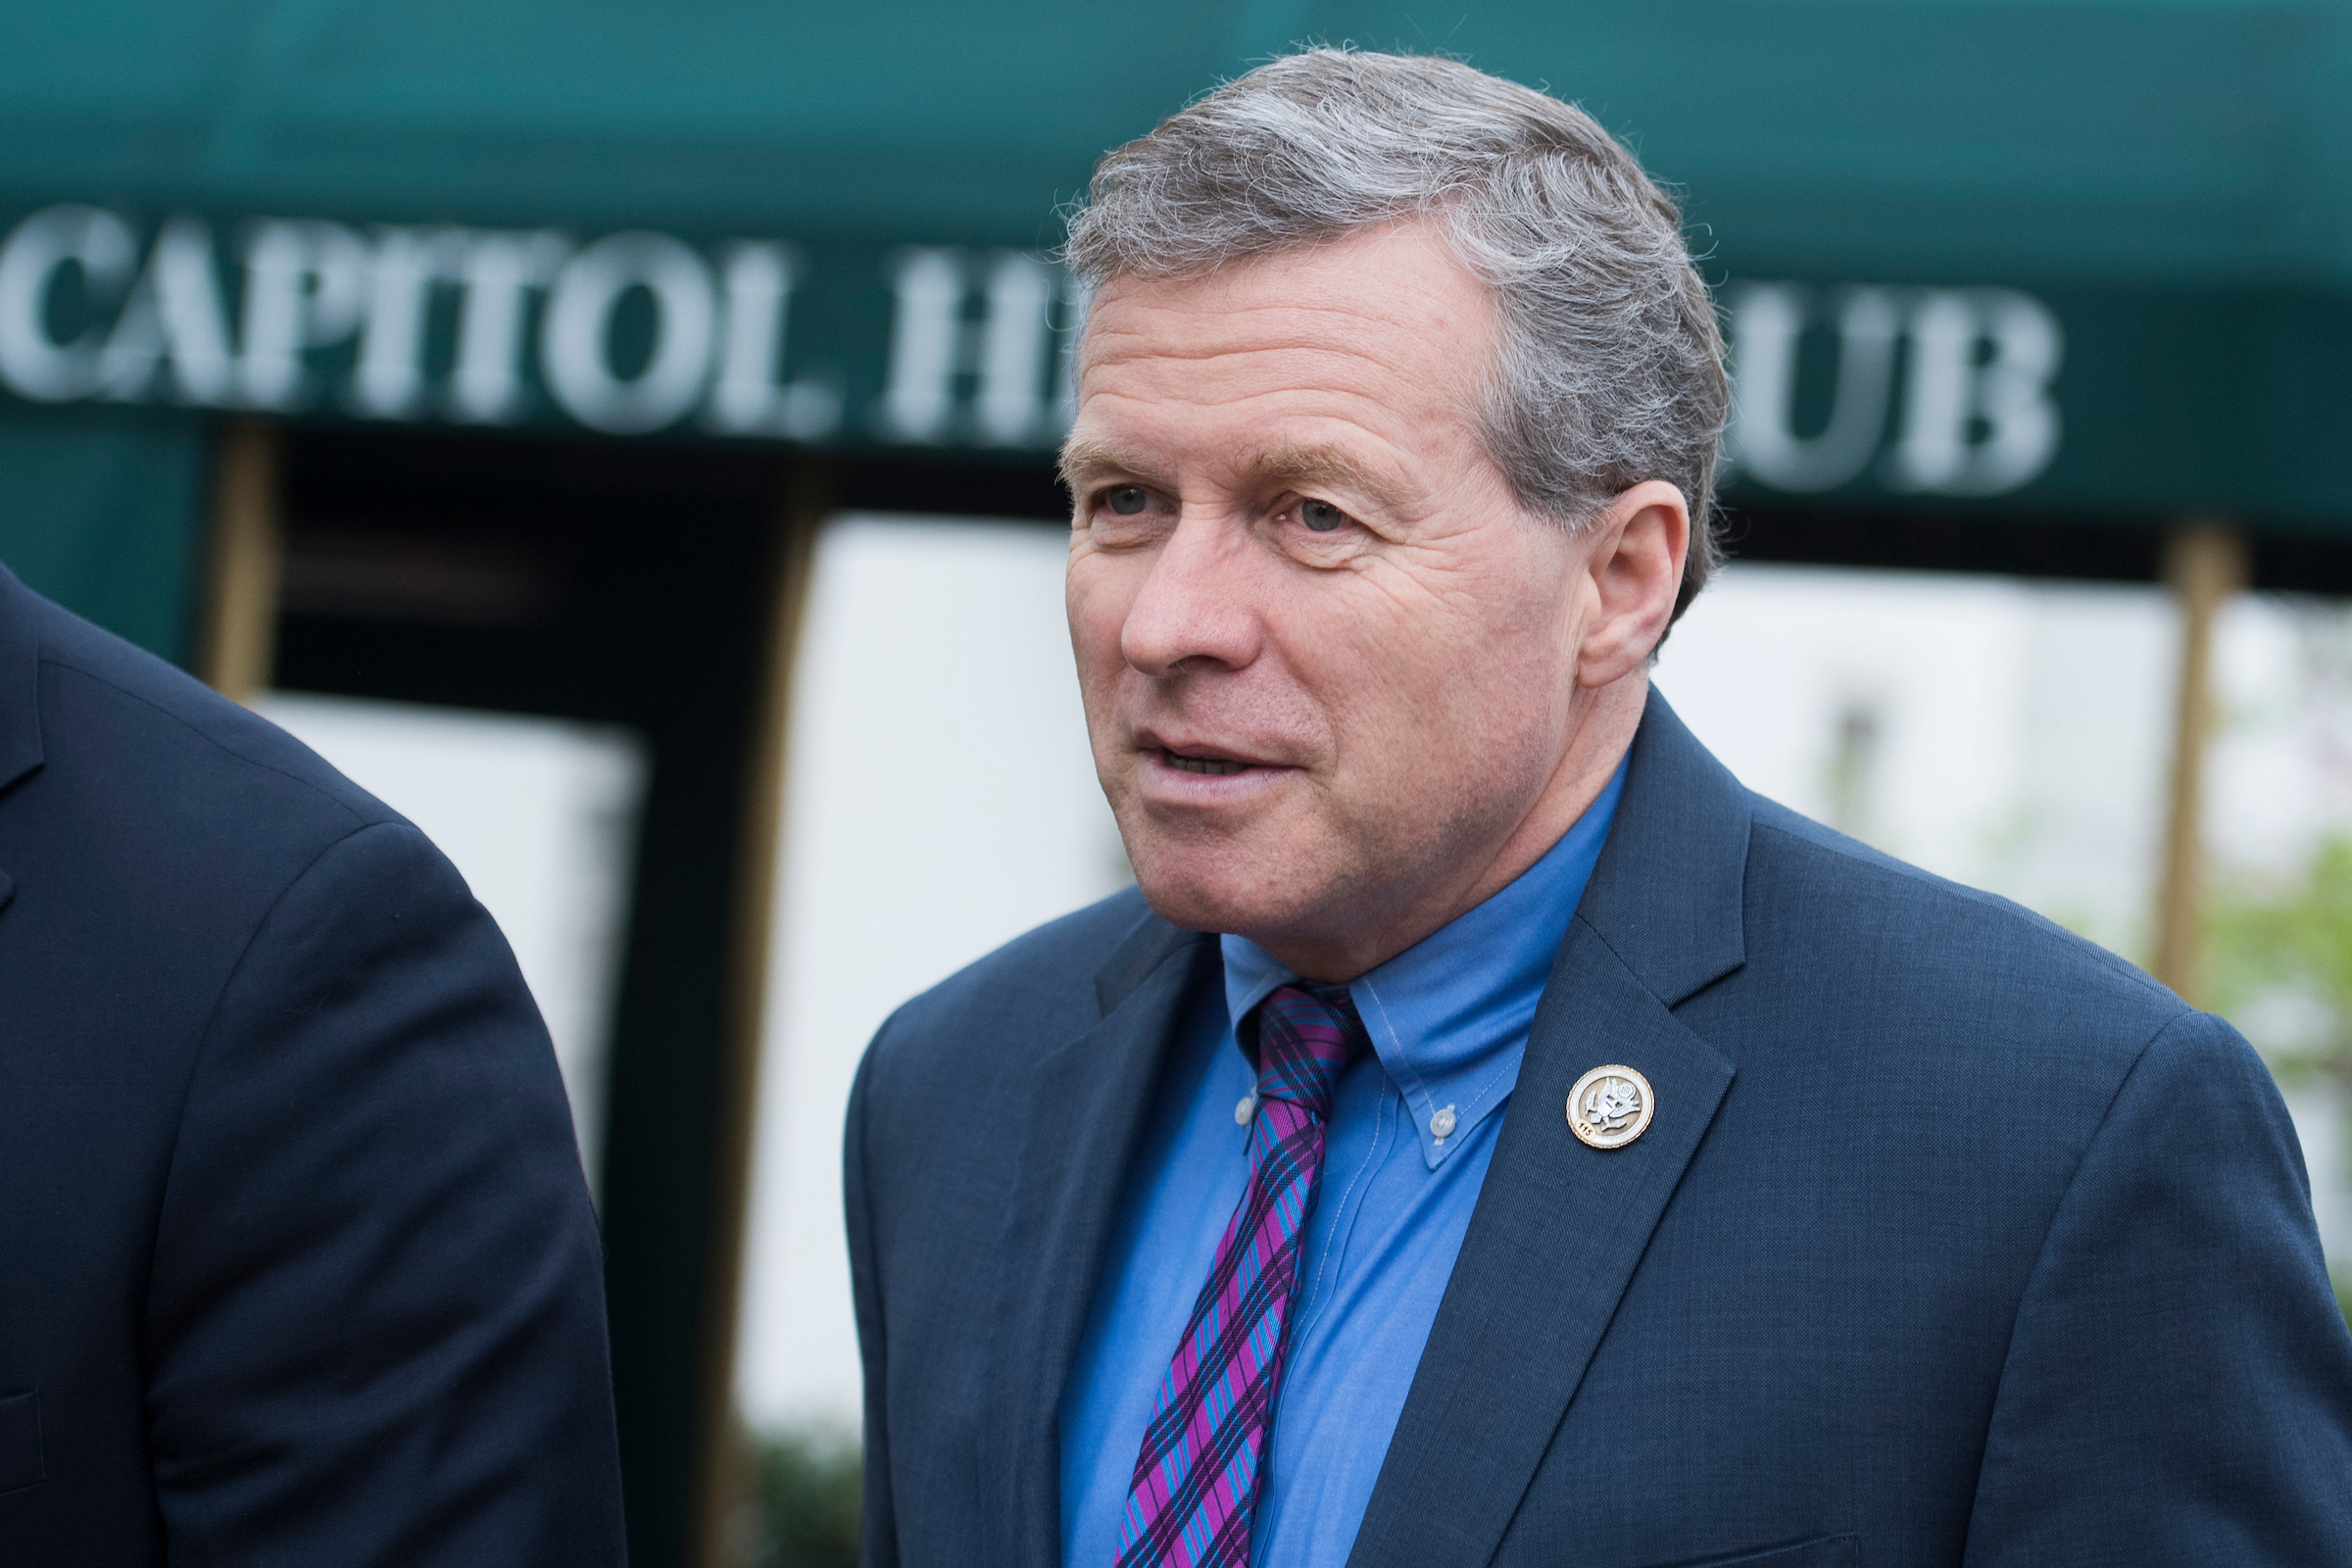 UNITED STATES - APRIL 17: Rep. Charlie Dent, R-Pa., leaves a meeting of the GOP Conference at the Capitol Hill Club on April 17, 2018. (Photo By Tom Williams/CQ Roll Call)